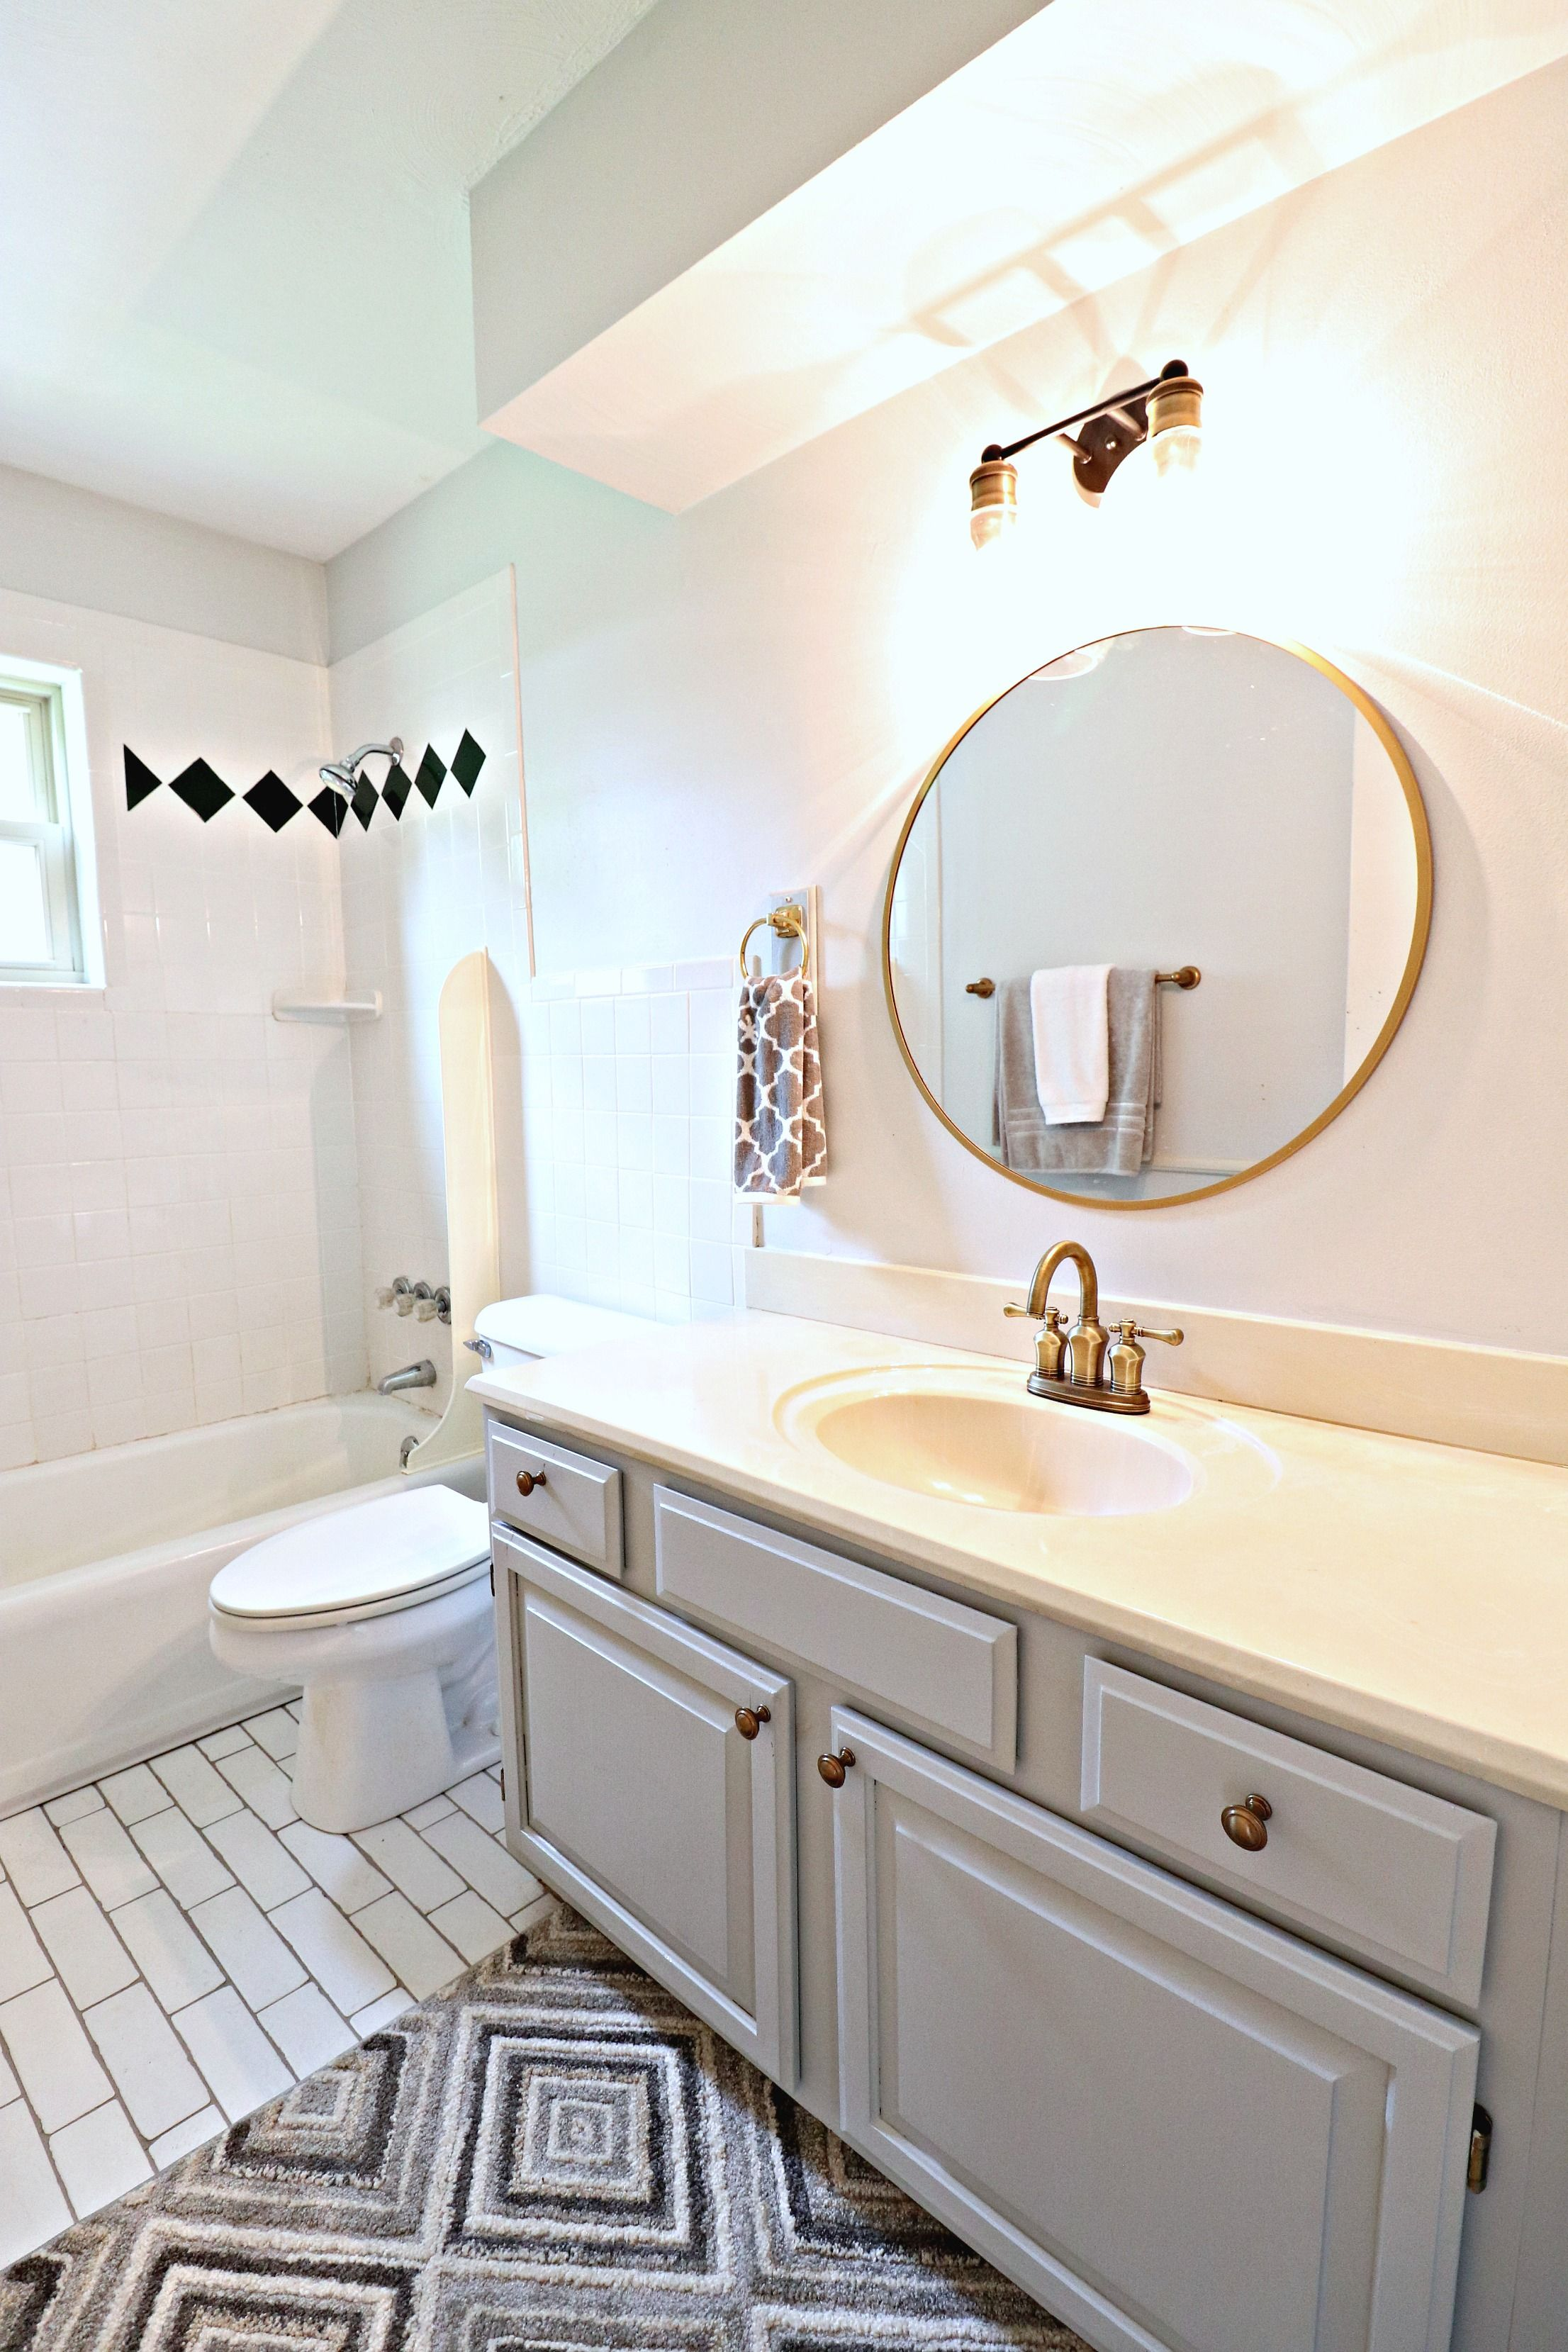 Home Tour: Budget Inspiration! Tour a completely updated ...